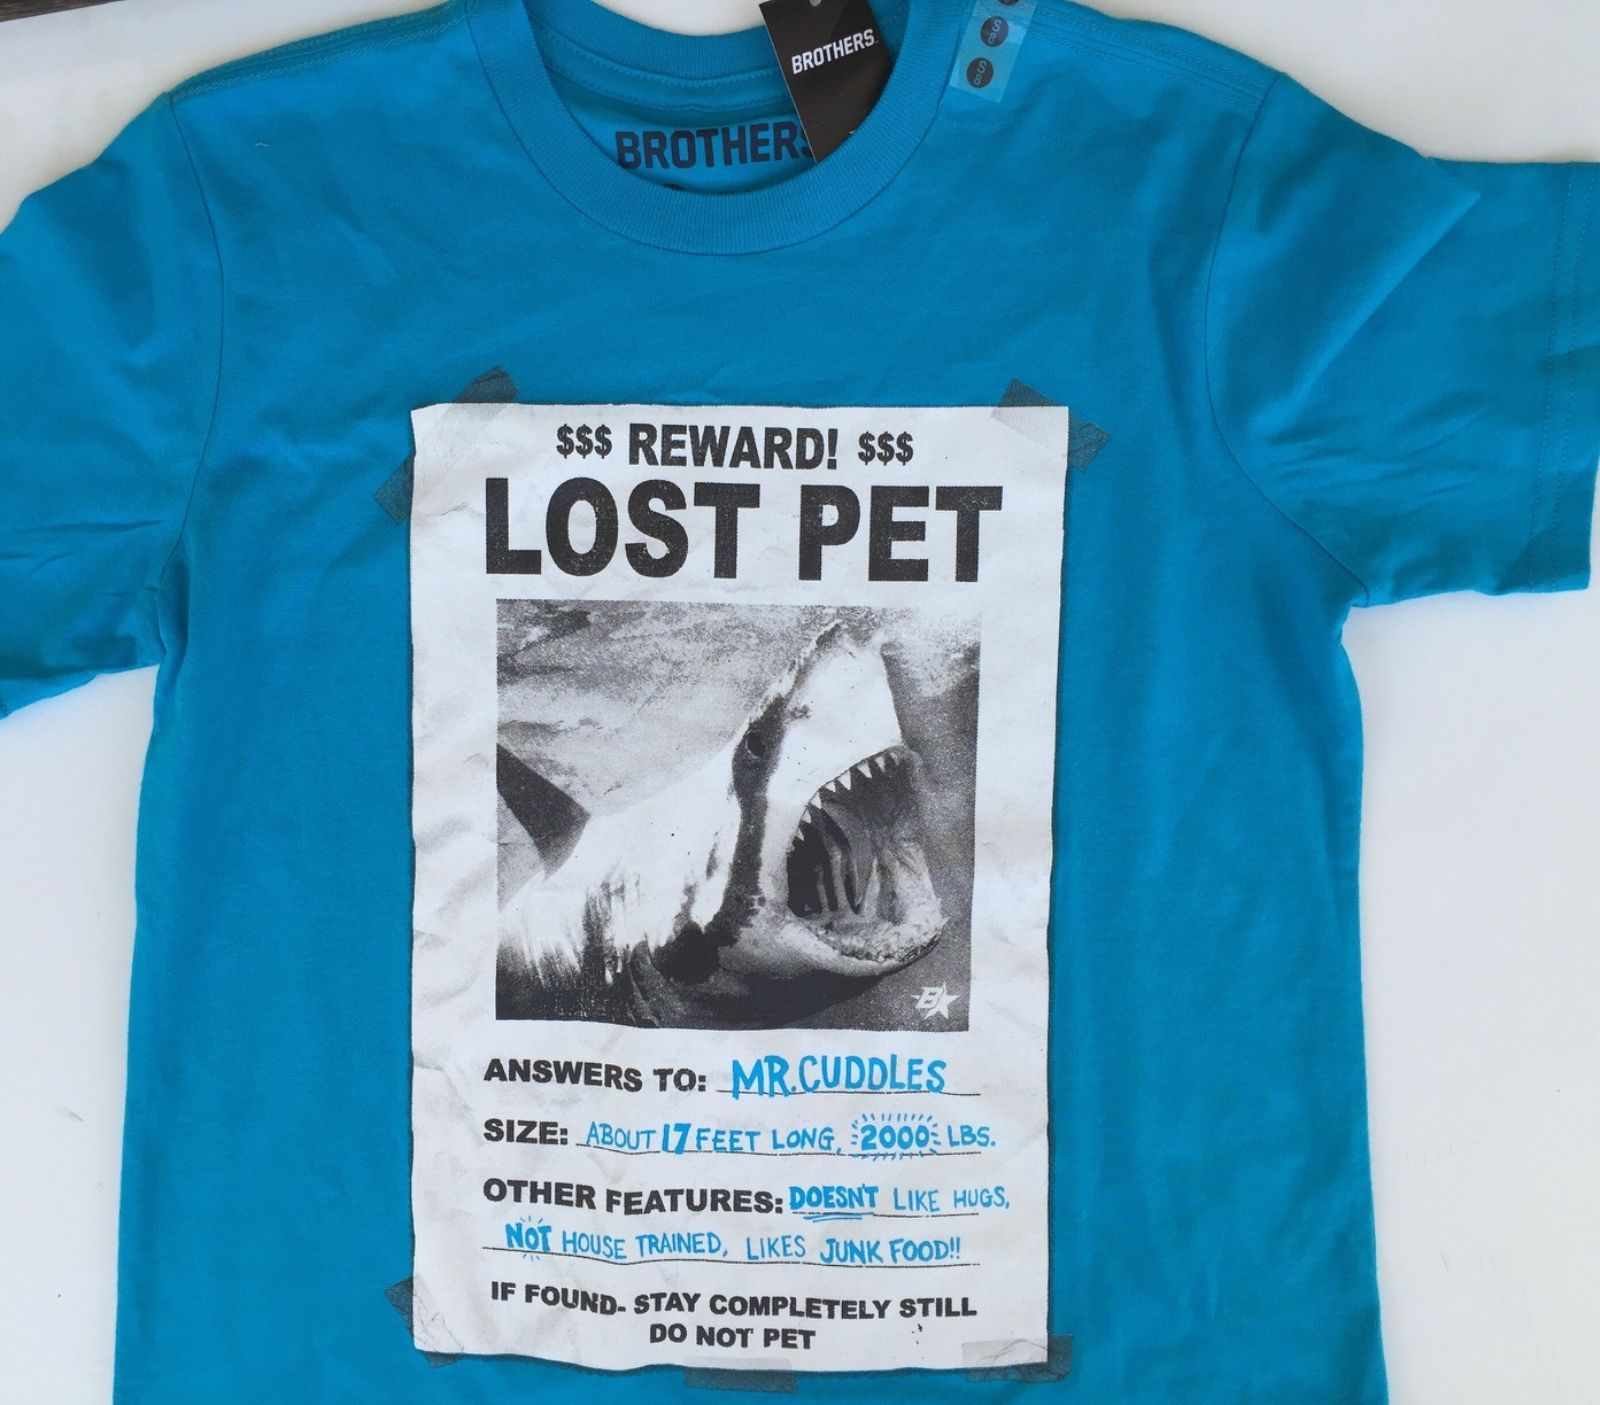 f0eb426e72d NWT Justice boys tee shirt blue pet shark lost cuddles 5 16 Brothers ...